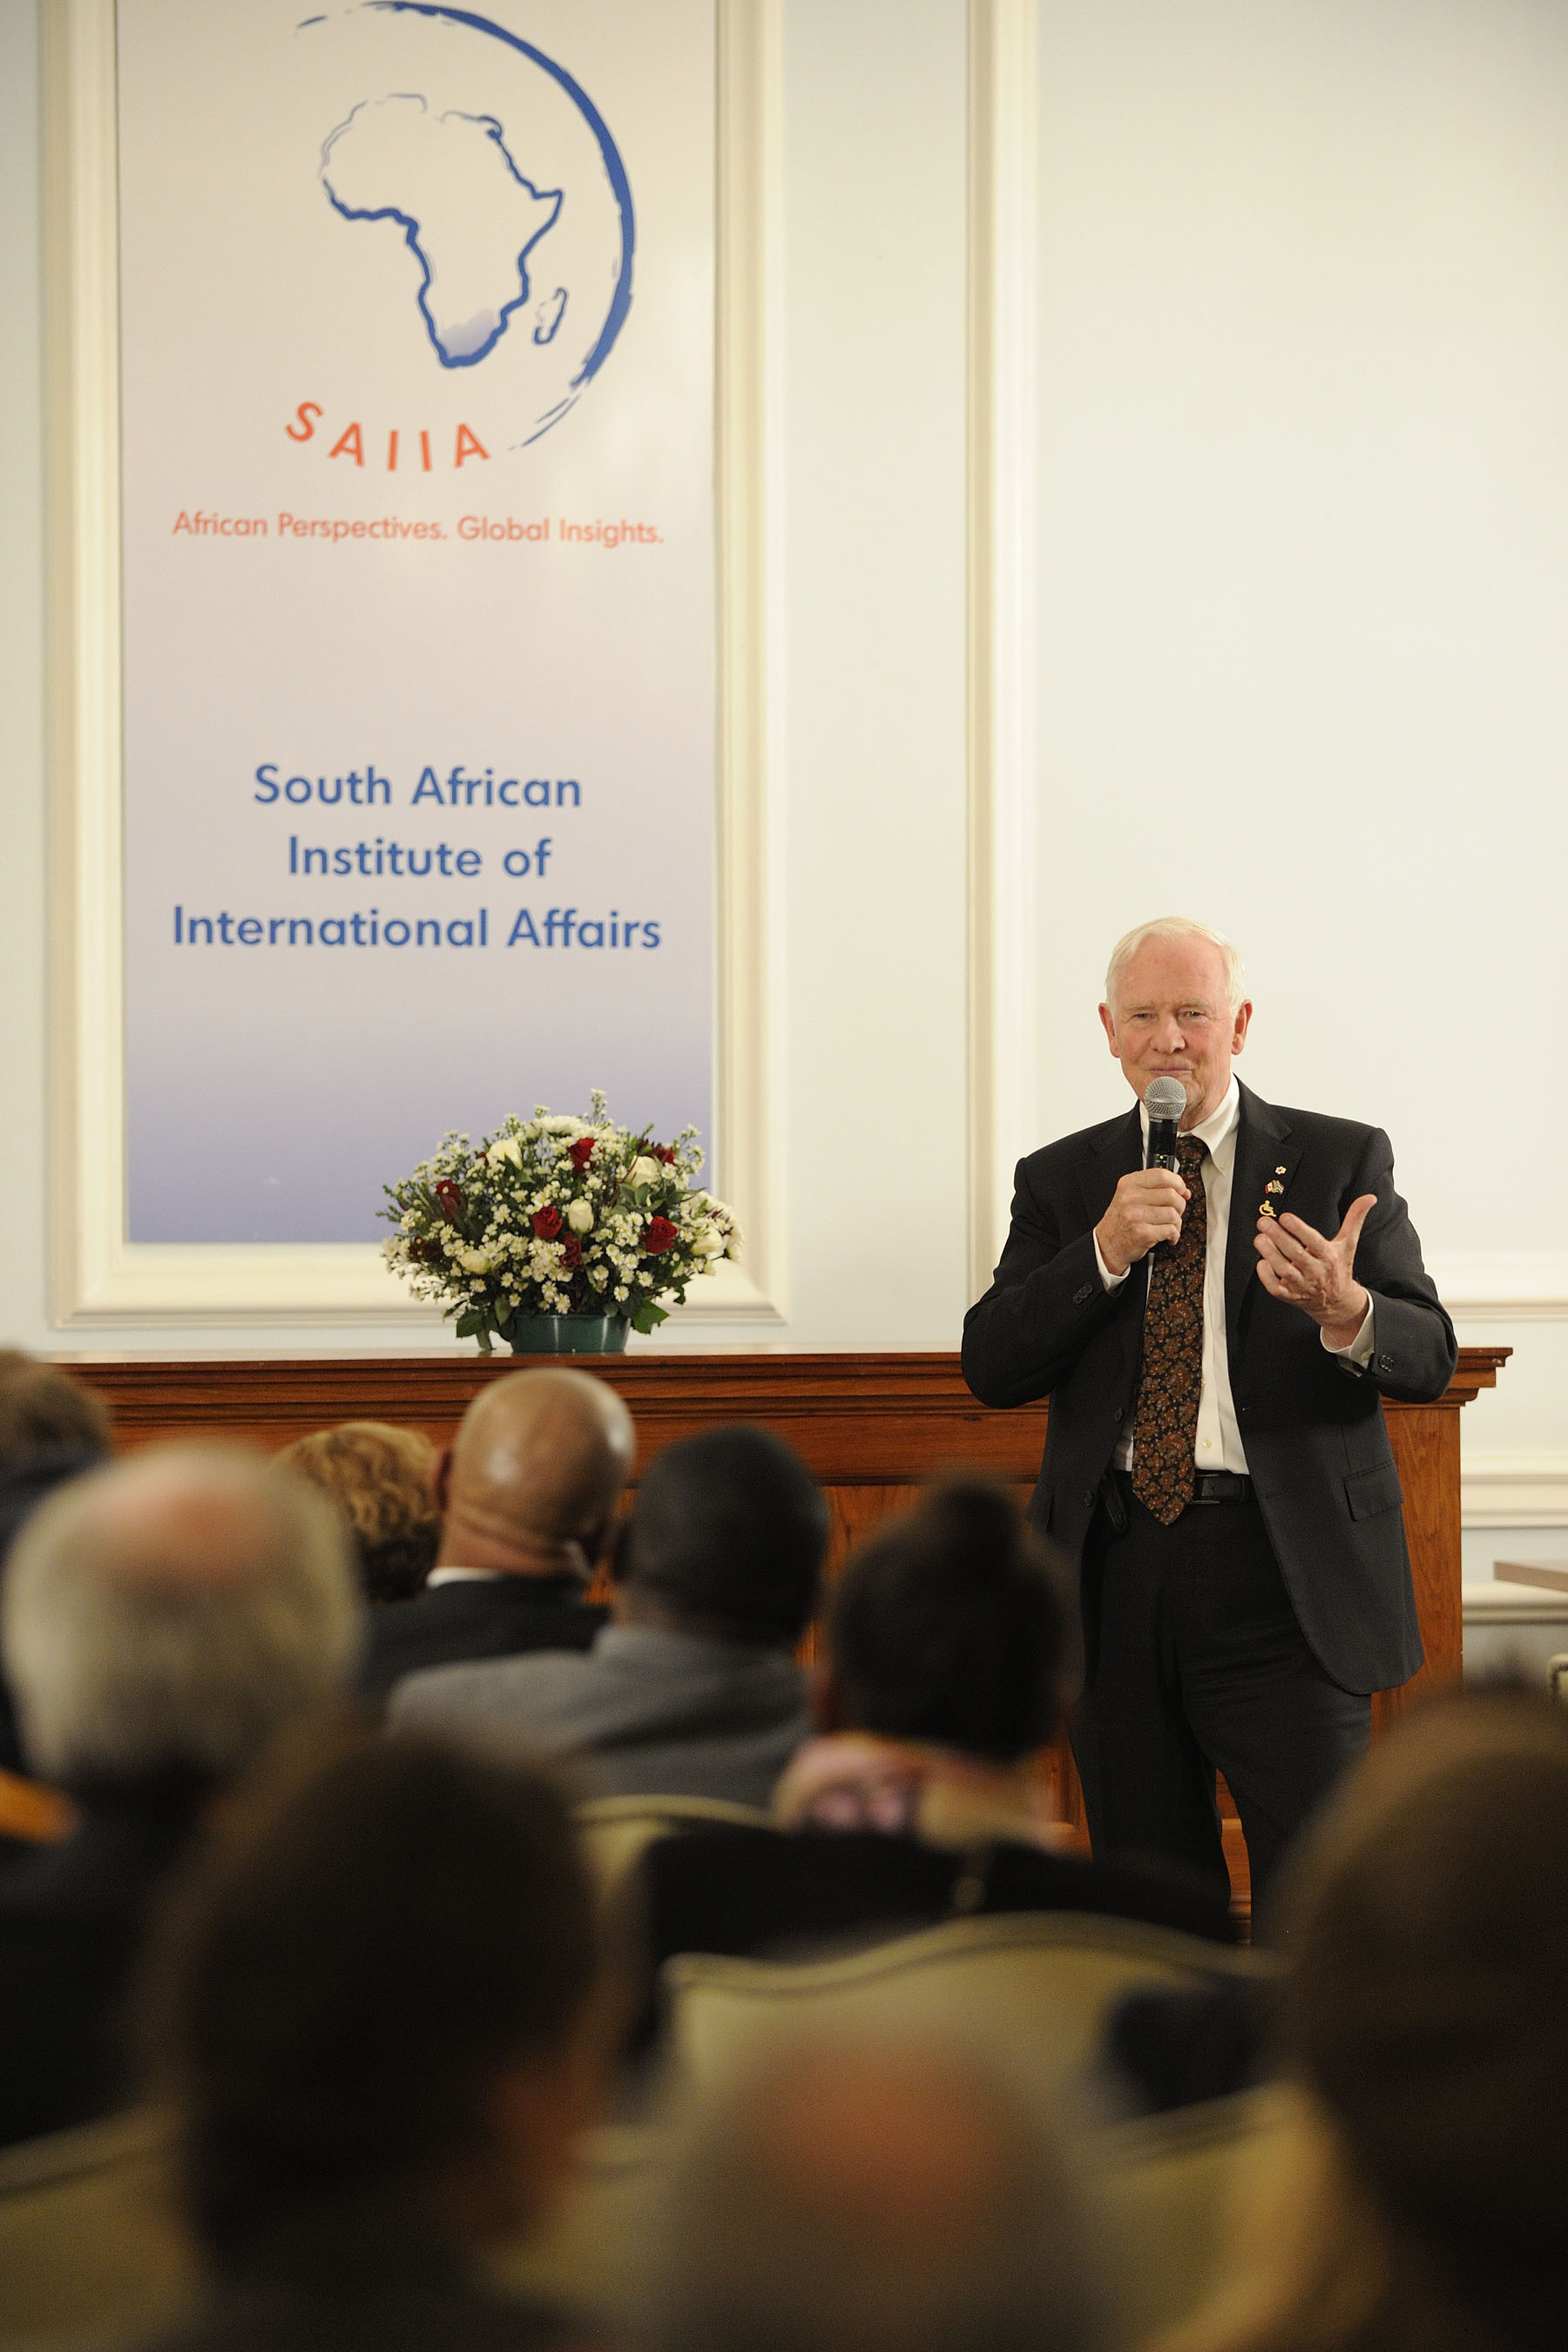 At the University of Witwatersrand in Johannesburg, His Excellency delivered a speech on Canada and South Africa relations to students, faculty staff and academics.